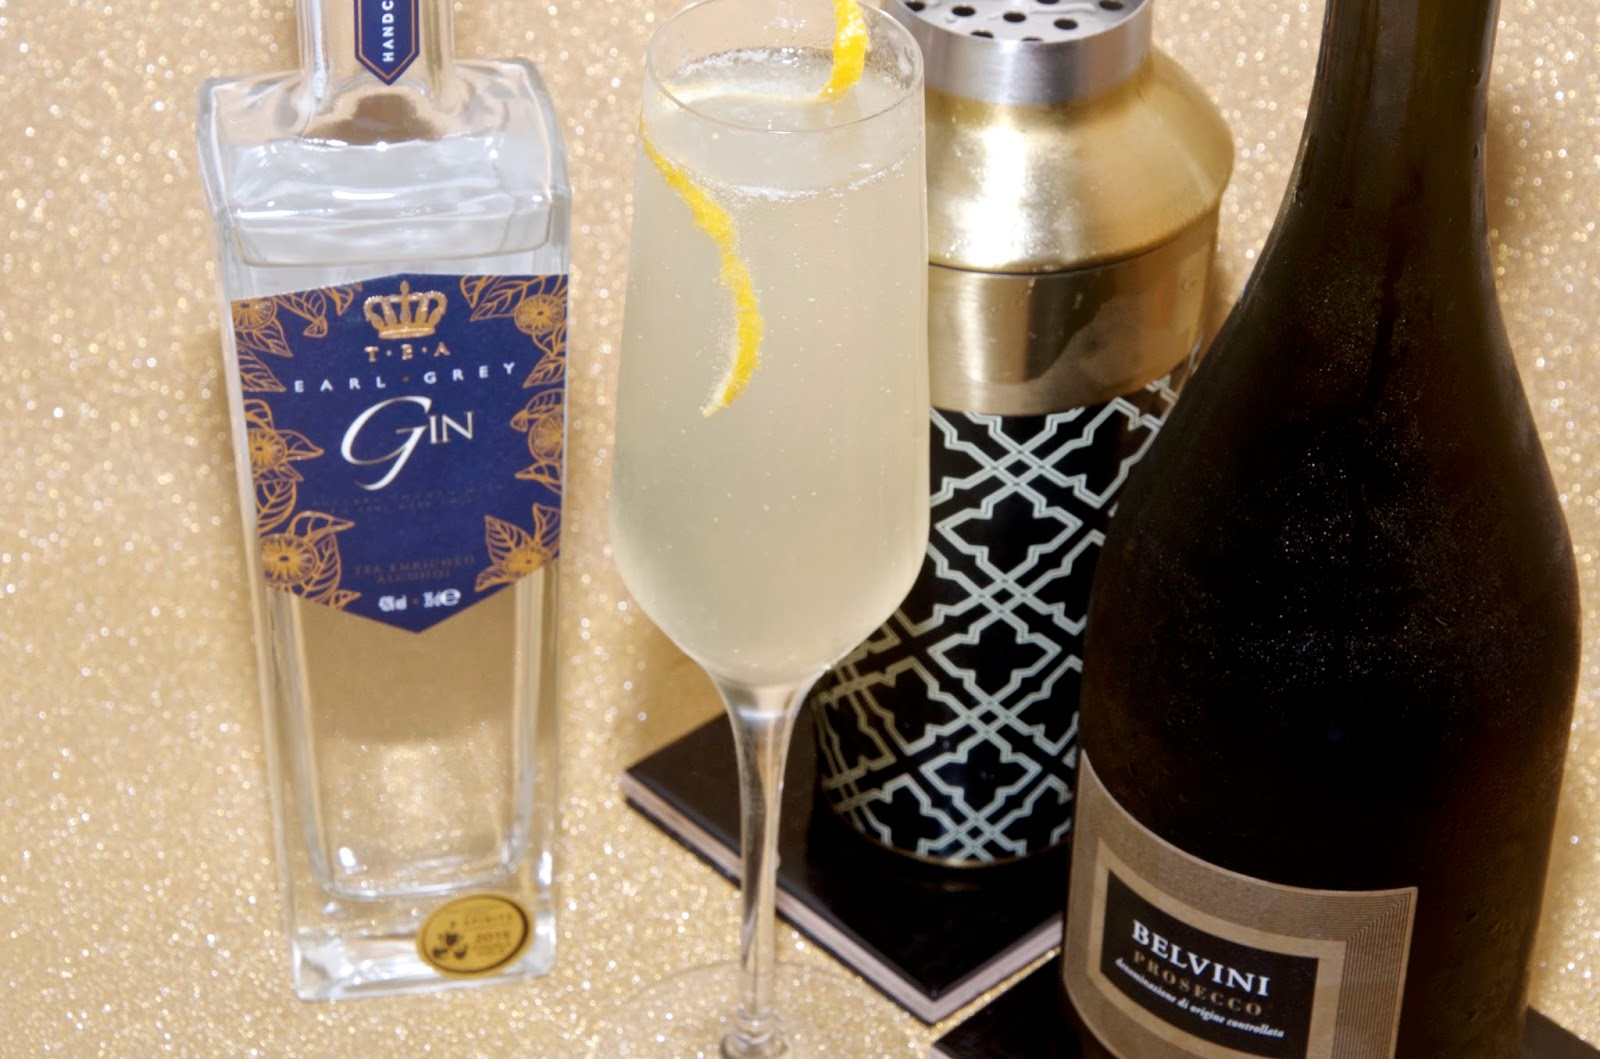 Earl Grey Gin Prosecco French 75 Cocktail Recipe with Kitchen Craft Art Deco Shaker